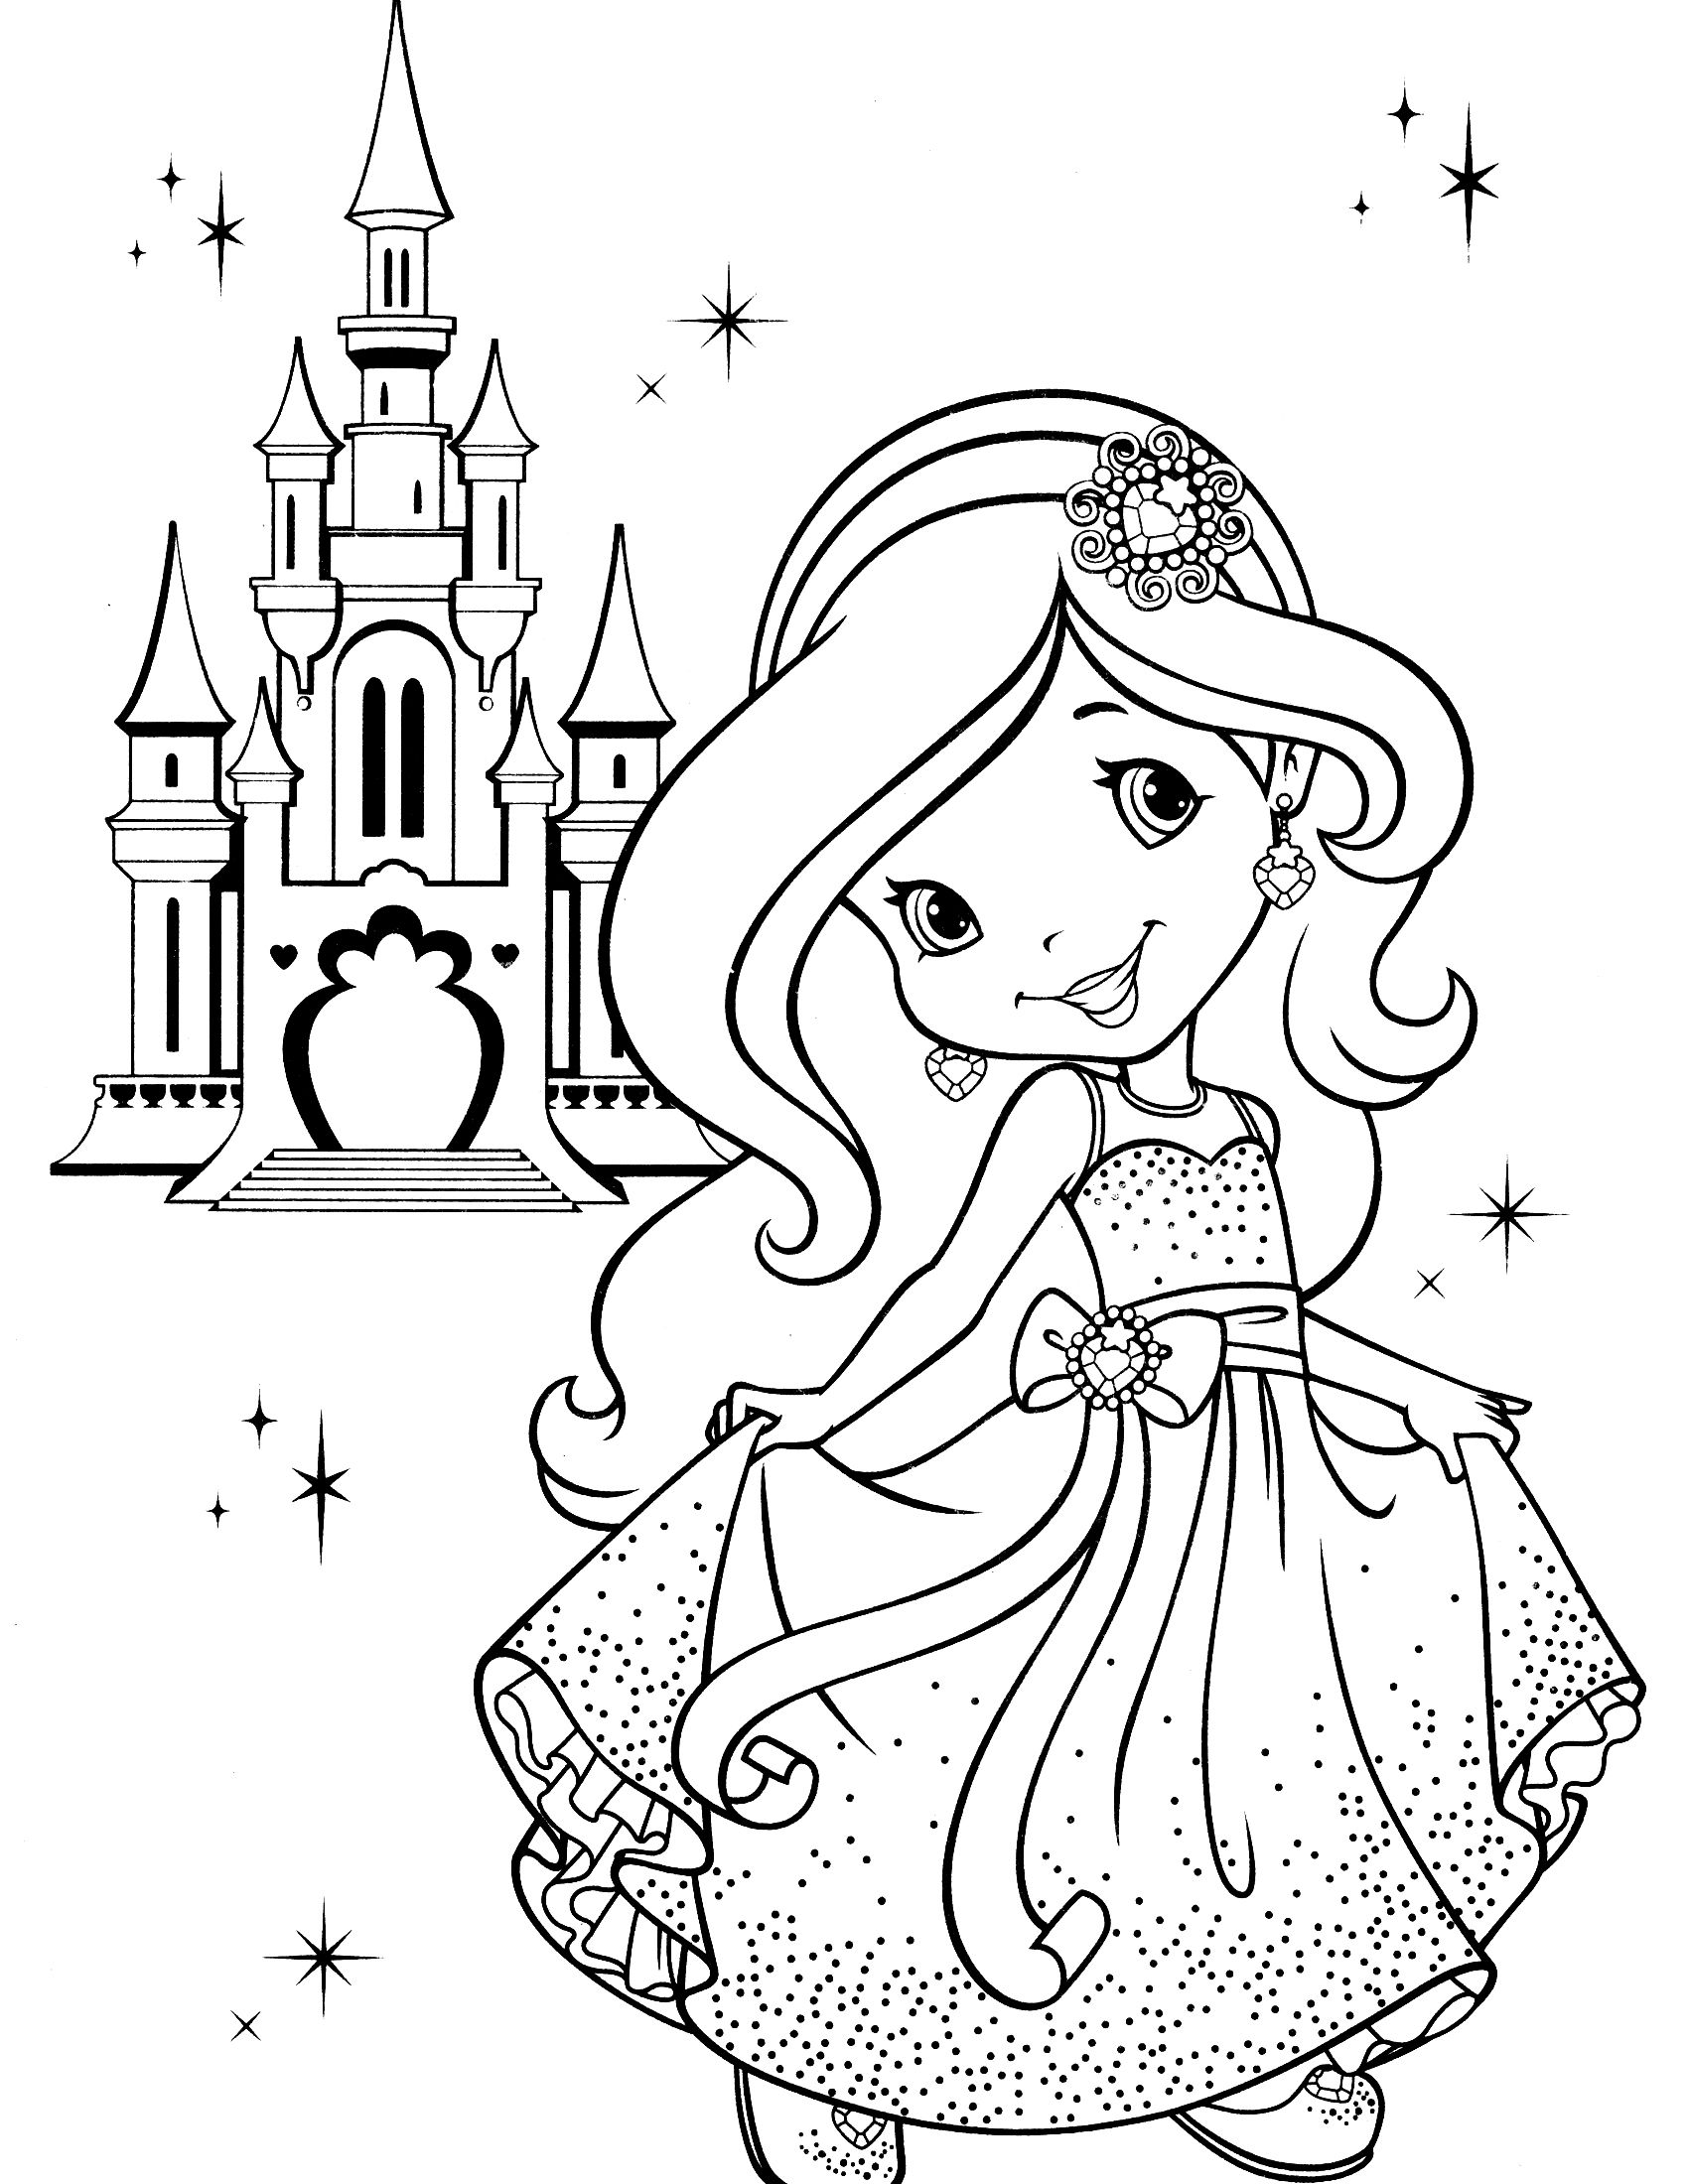 strawberry shortcake coloring page | Adult Coloring Book | Pinterest ...